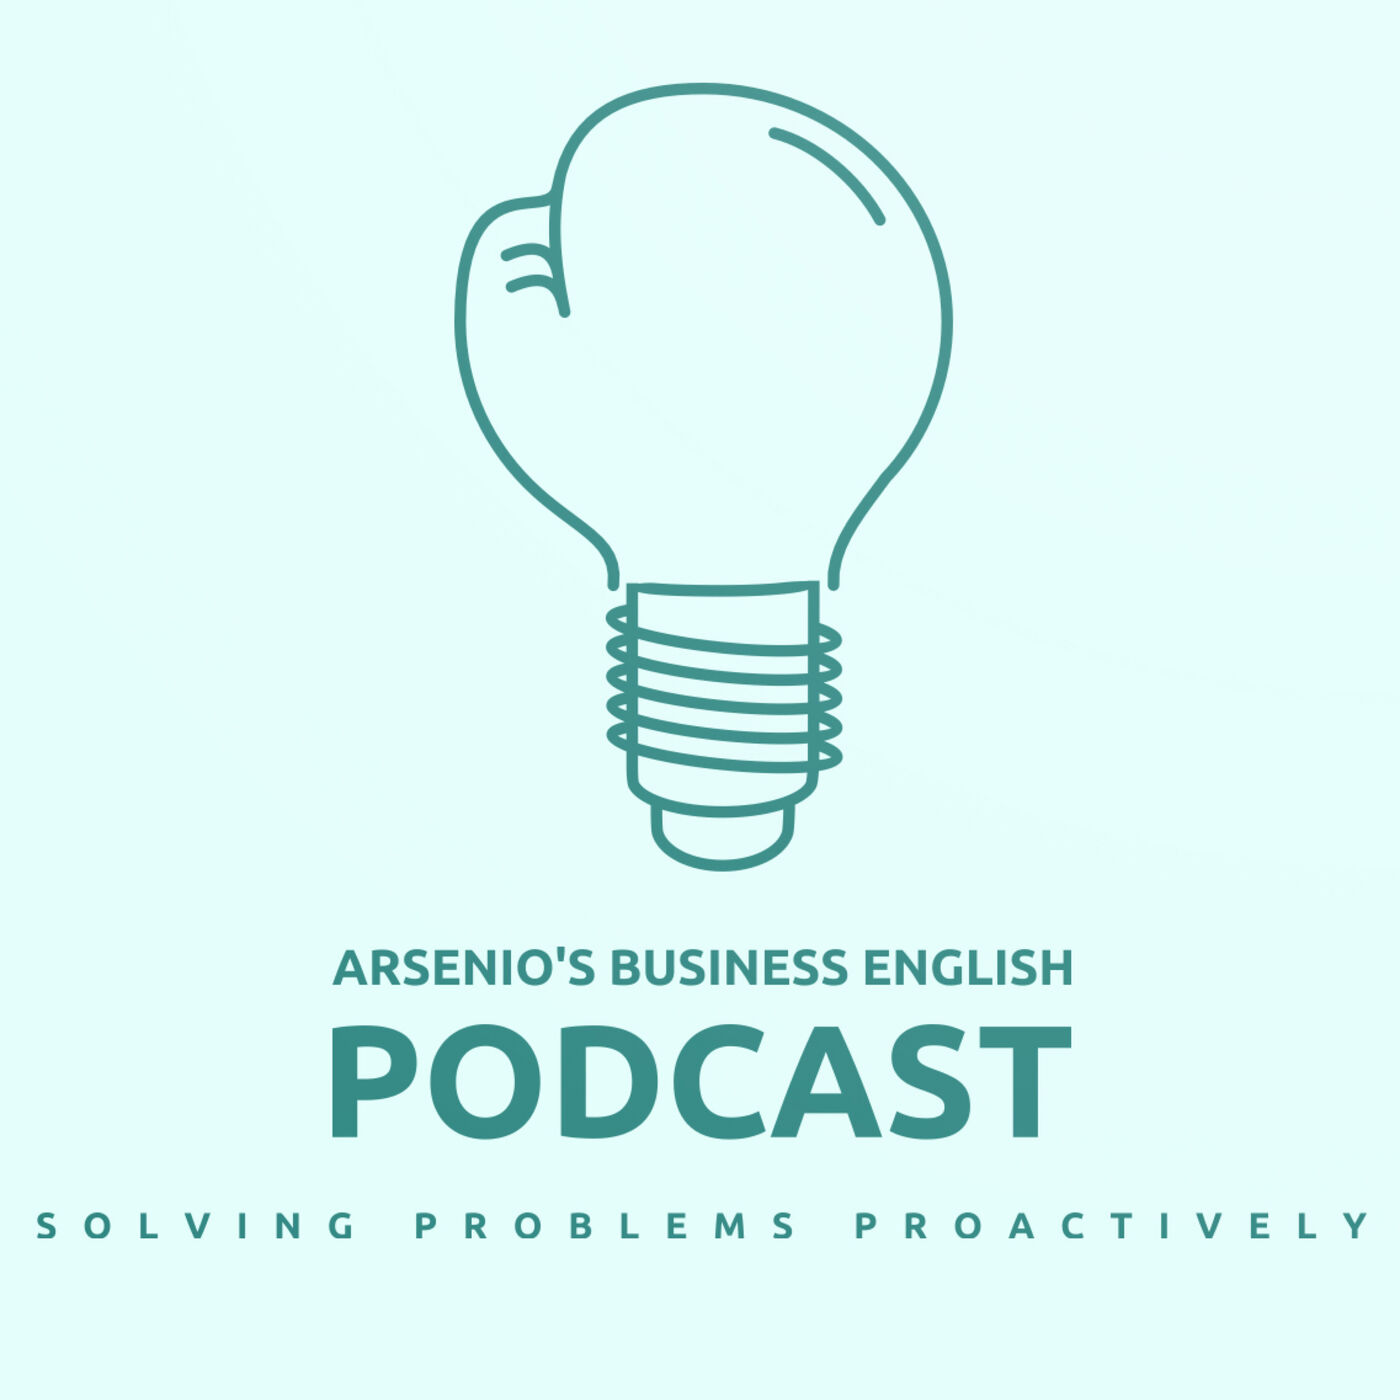 Arsenio's Business English Podcast | Season 6: Episode 19 | Put Your Heads Together: Solving Problems Proactively